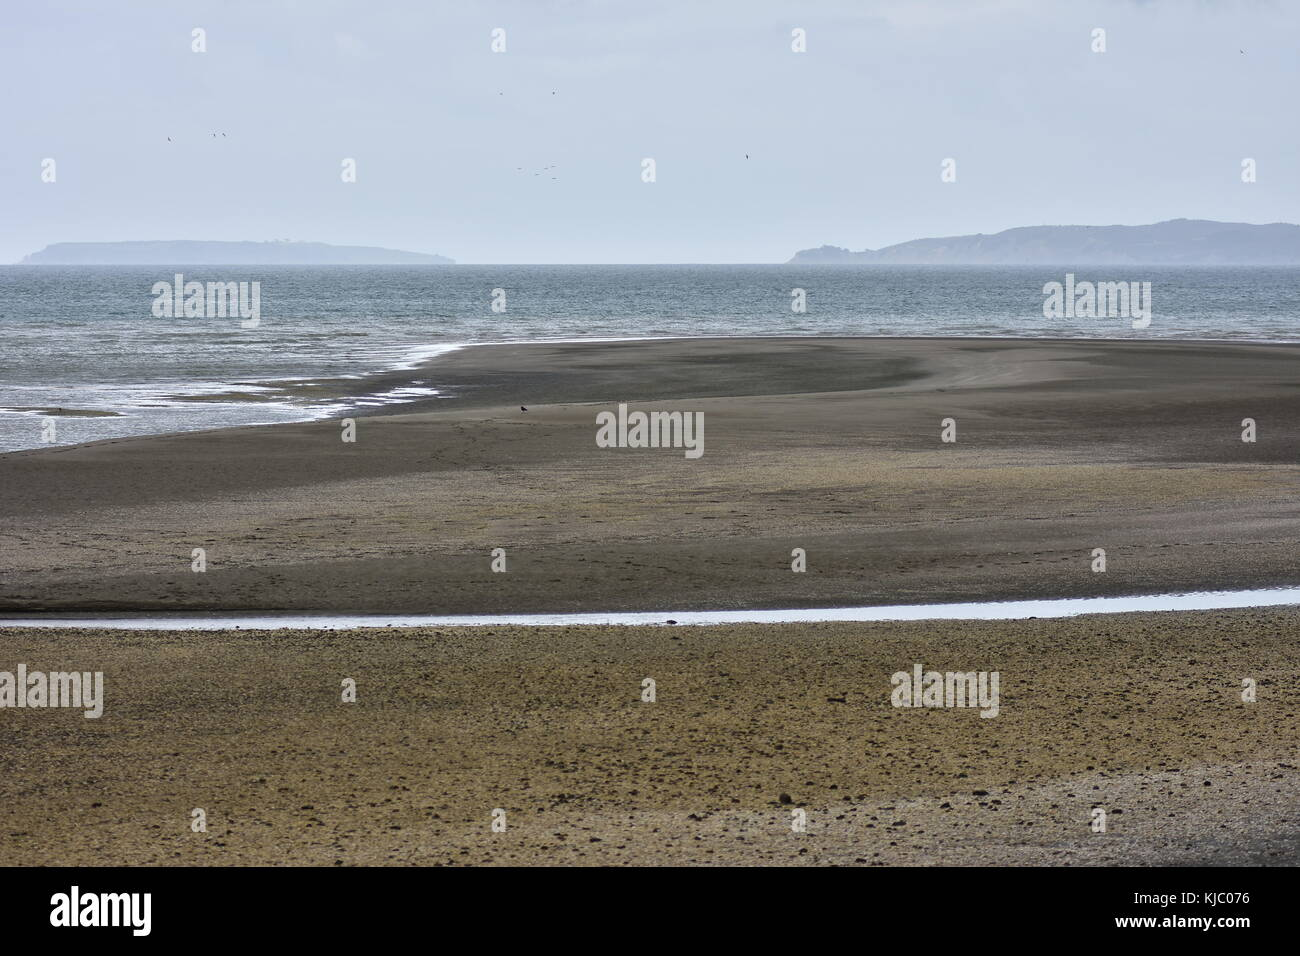 Flat dark sand beach during low tide in Hauraki Gulf in New Zealand. - Stock Image